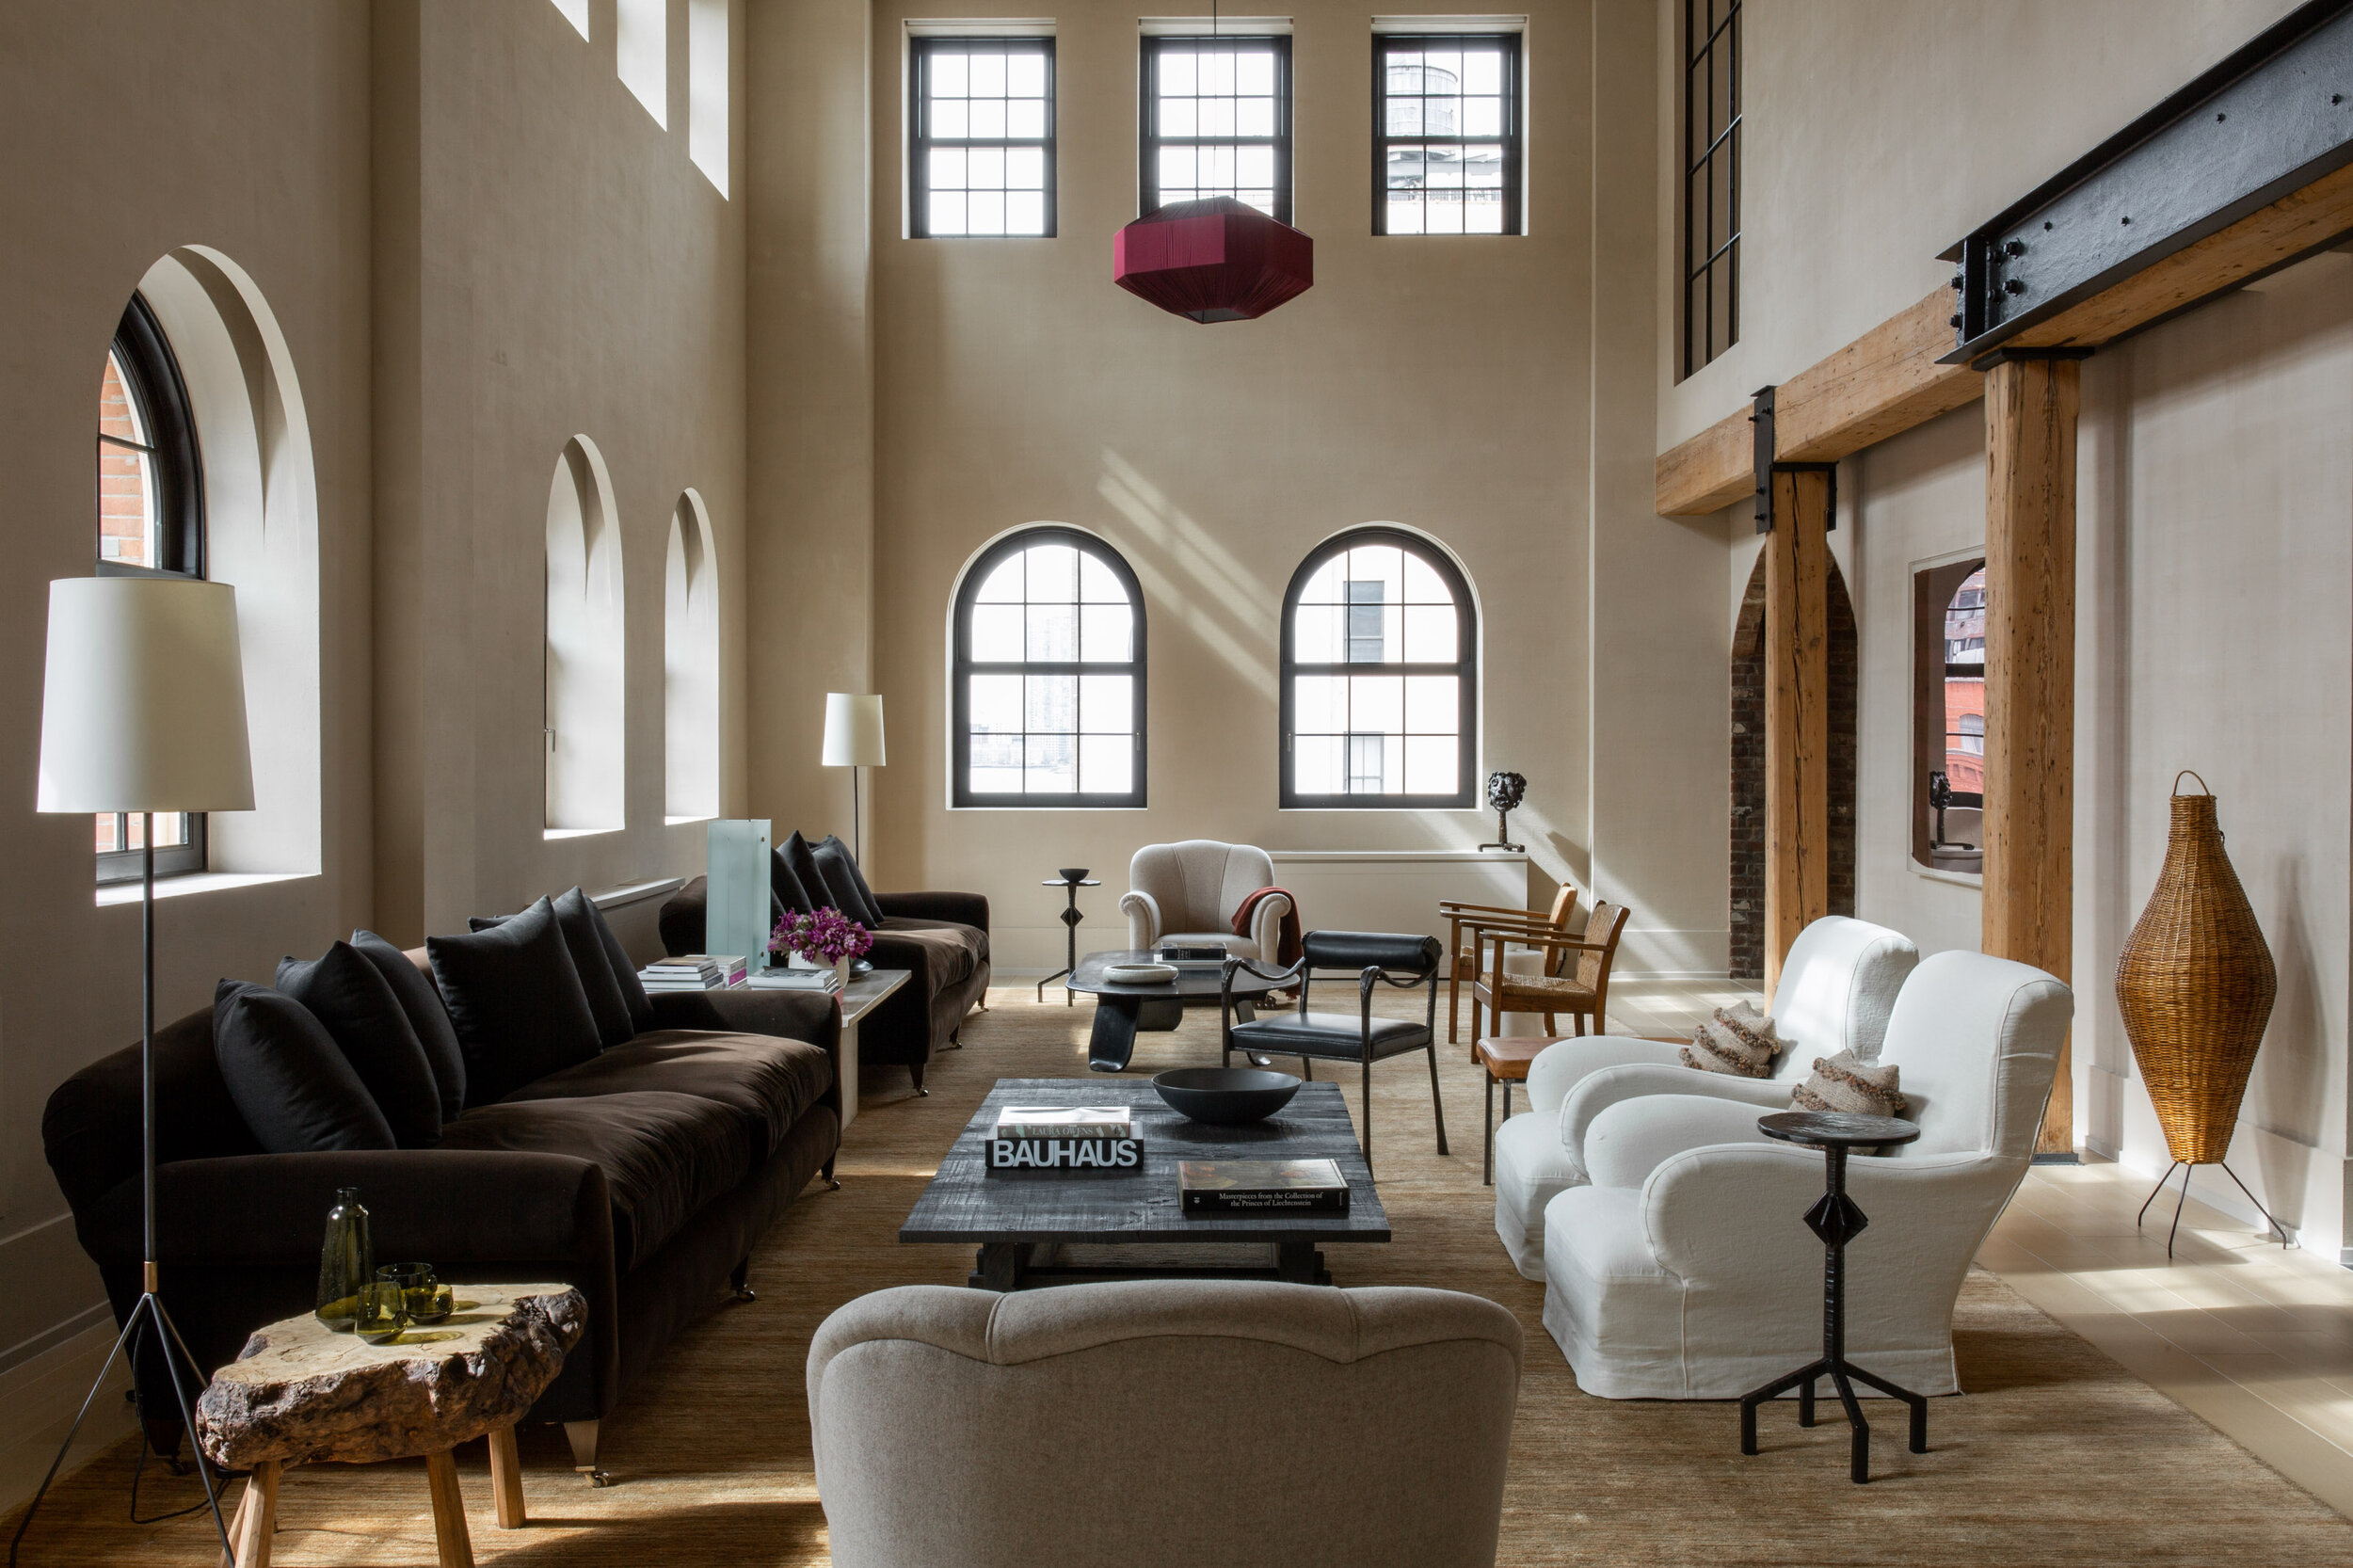 NYC Interior Designers, A List Of The Top 10  nyc interior designers NYC Interior Designers, A List Of The Top 10 ashe leandro